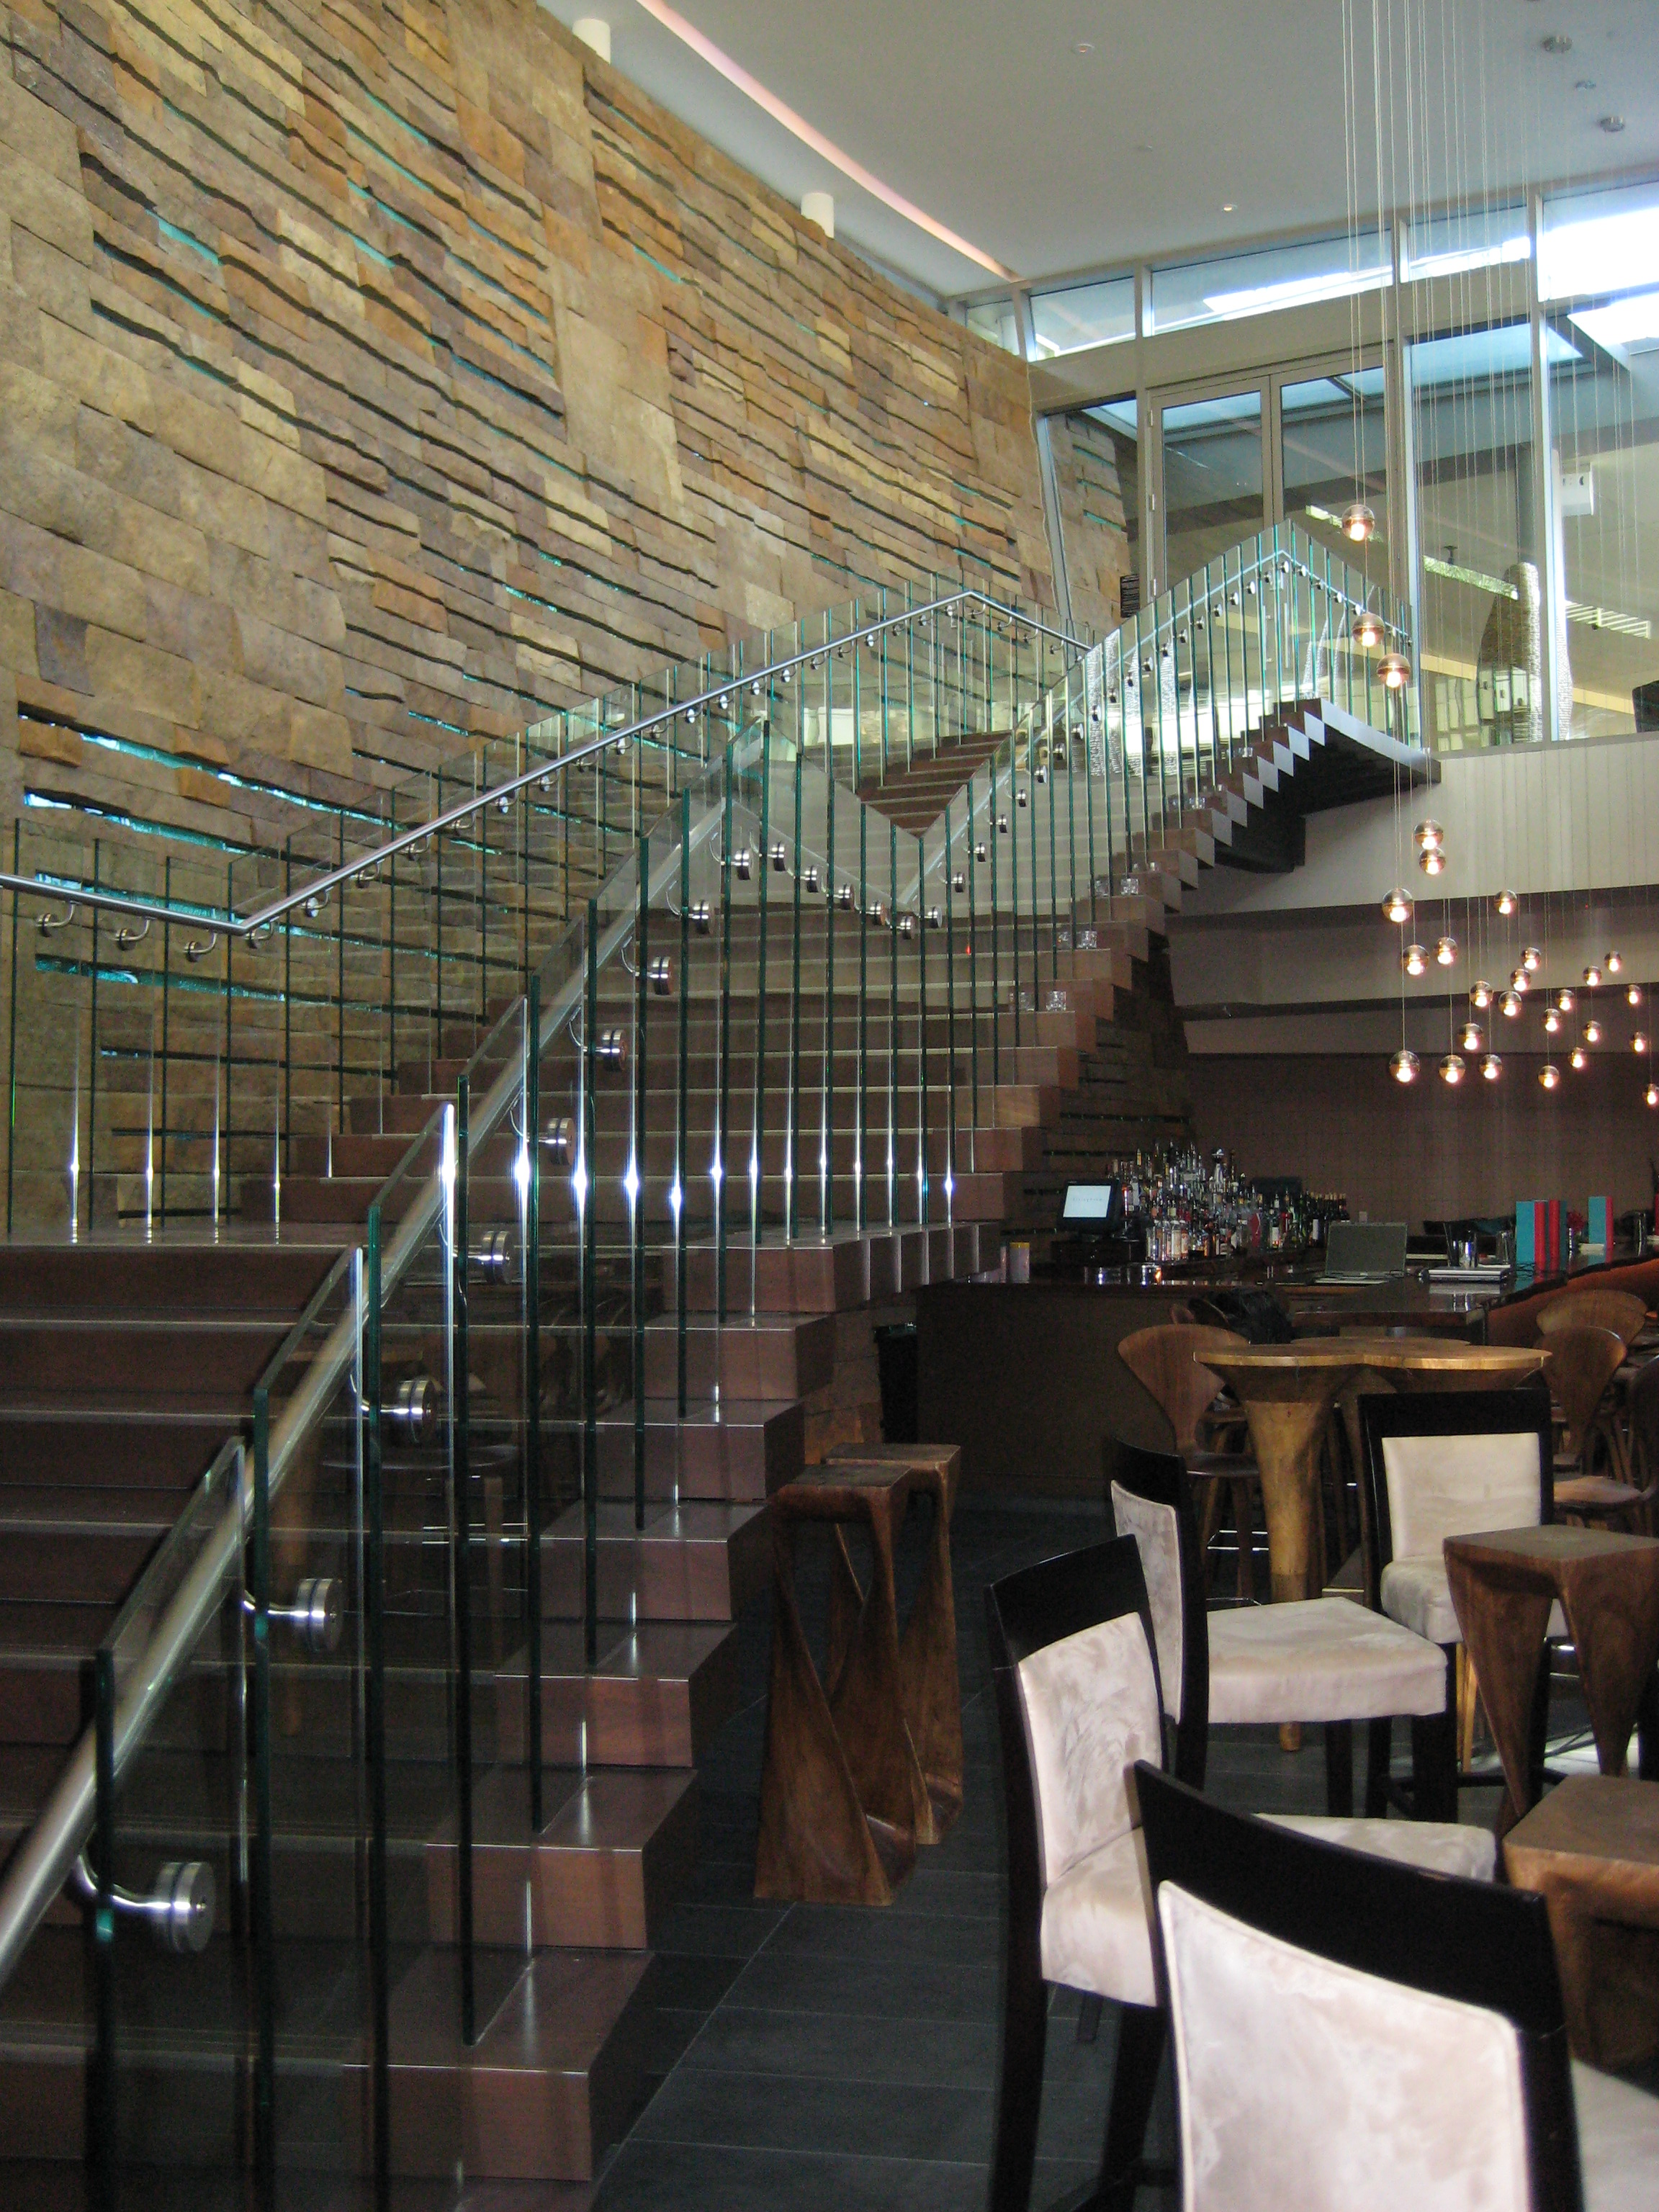 W scottsdale - grand staircase over bar